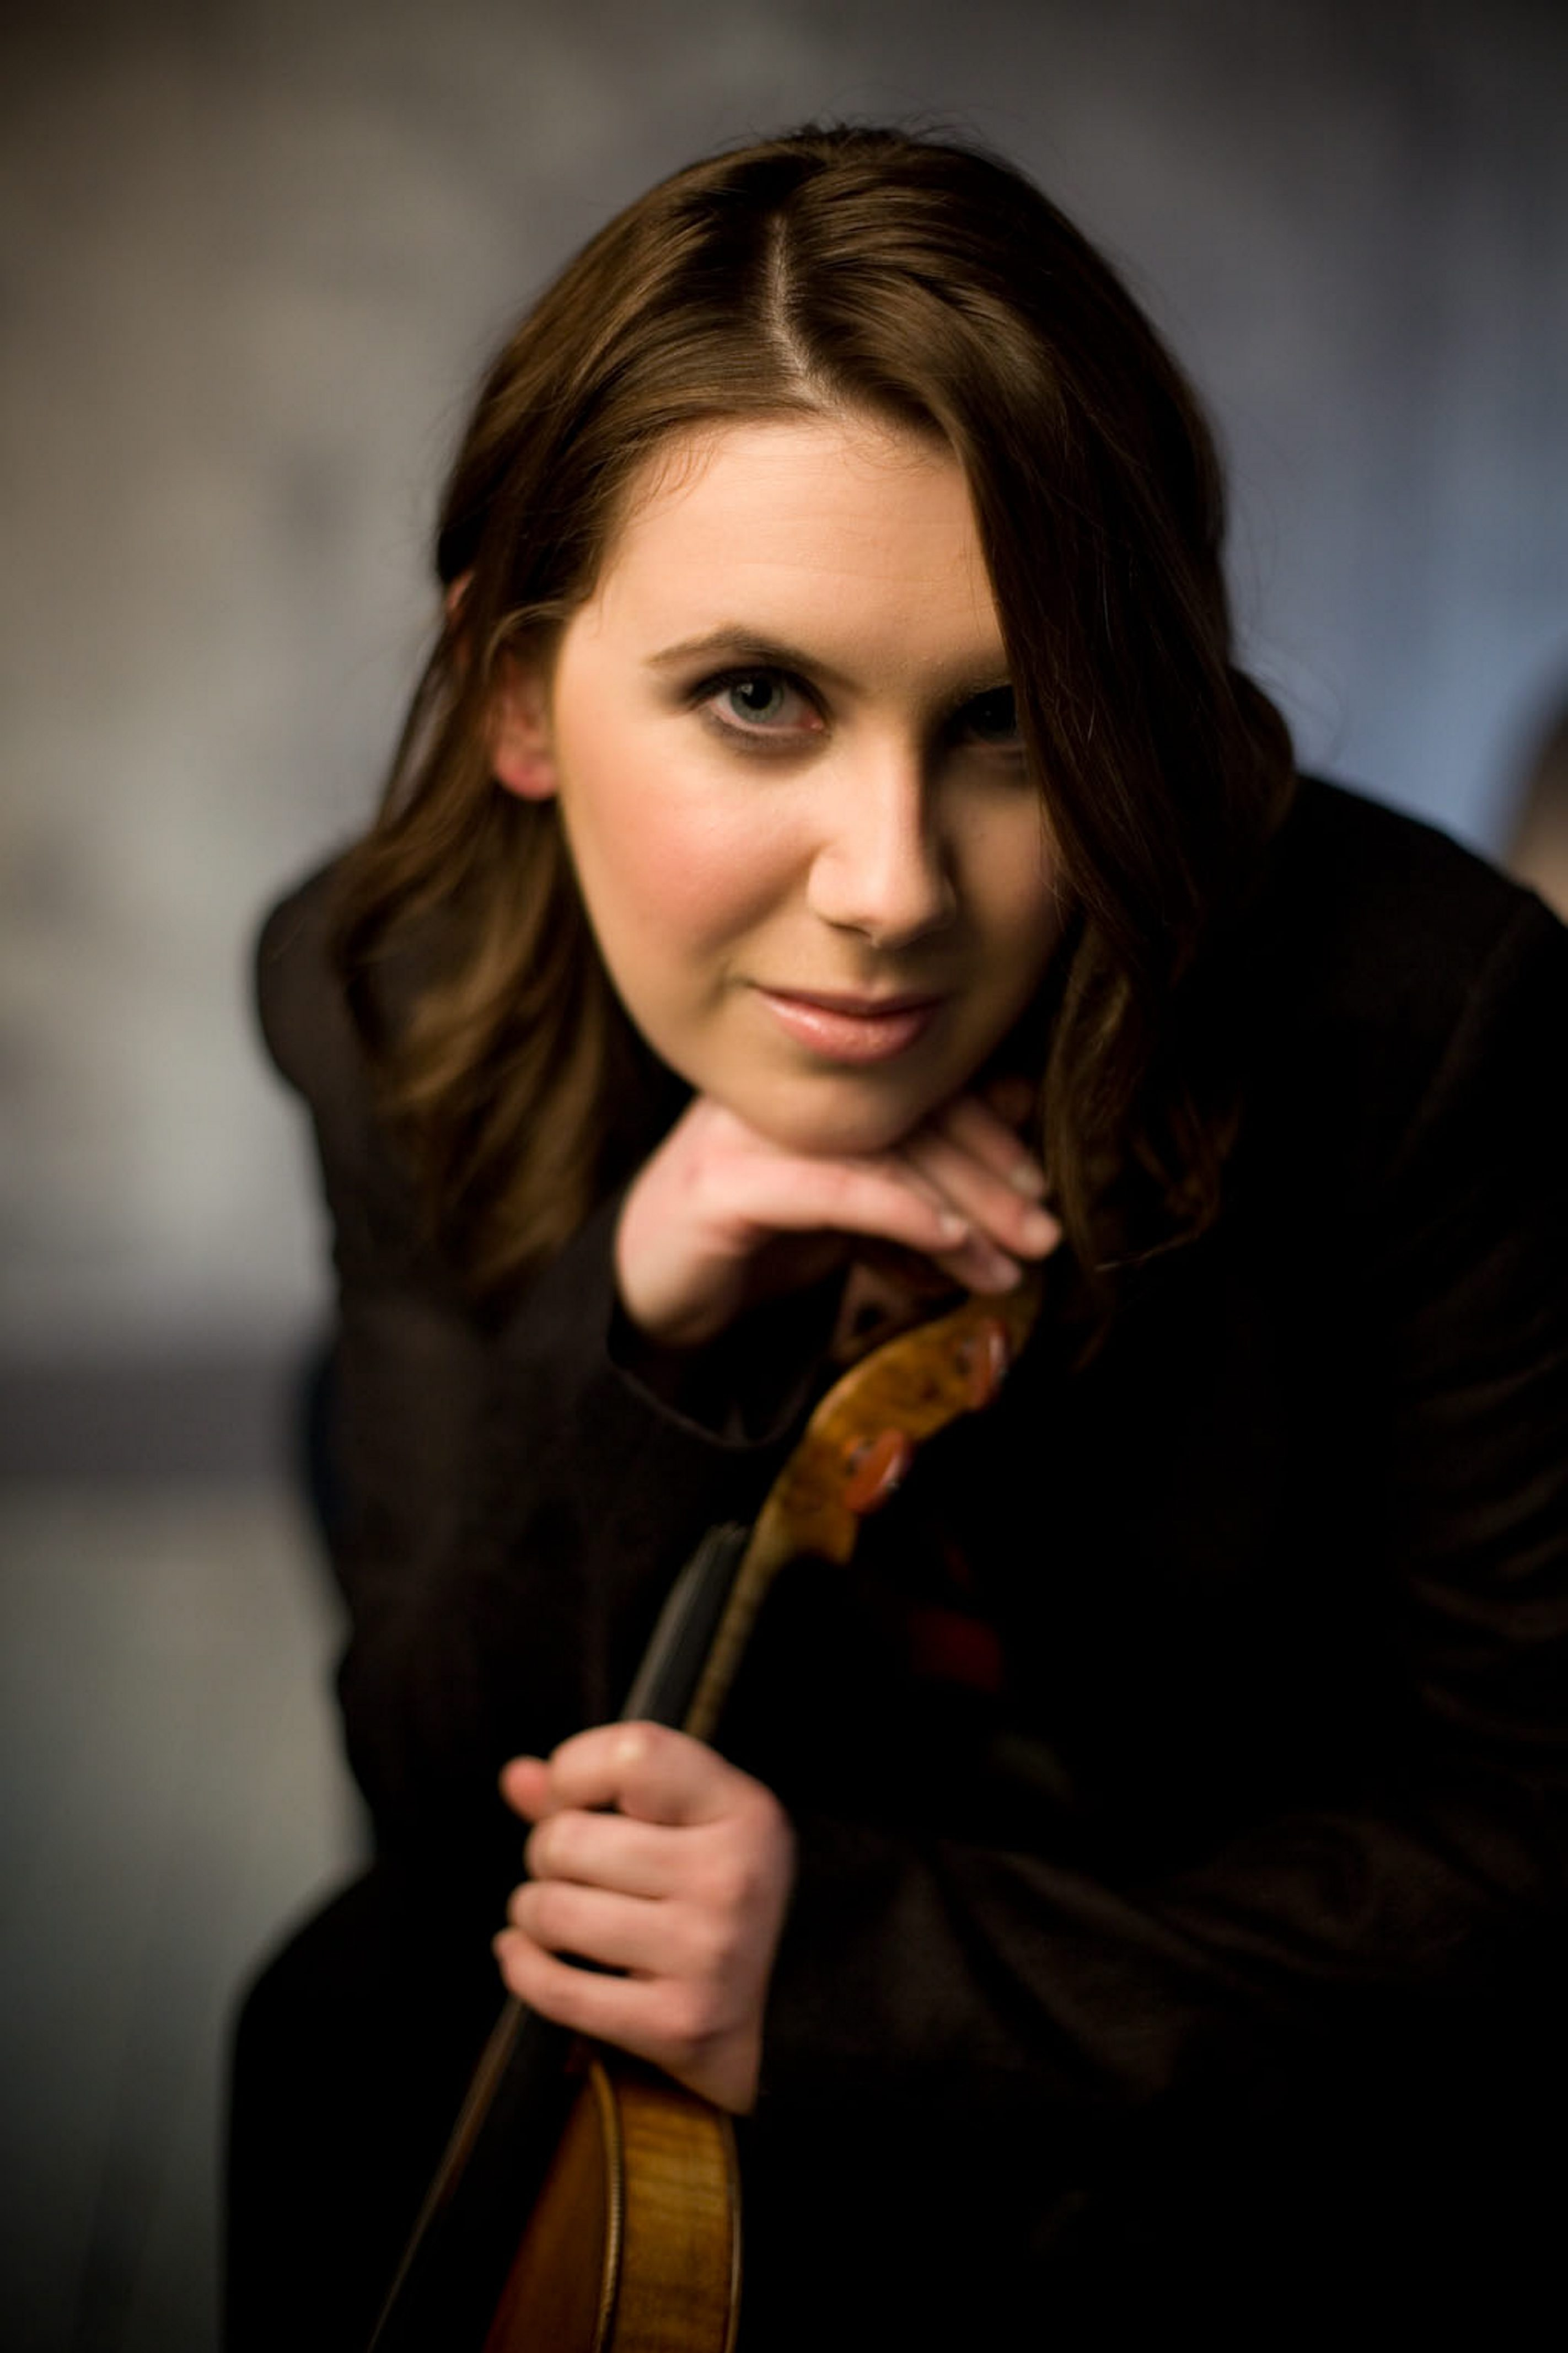 Chloe Hanslip will perform two concerts with the Buffalo Philharmonic Orchestra.